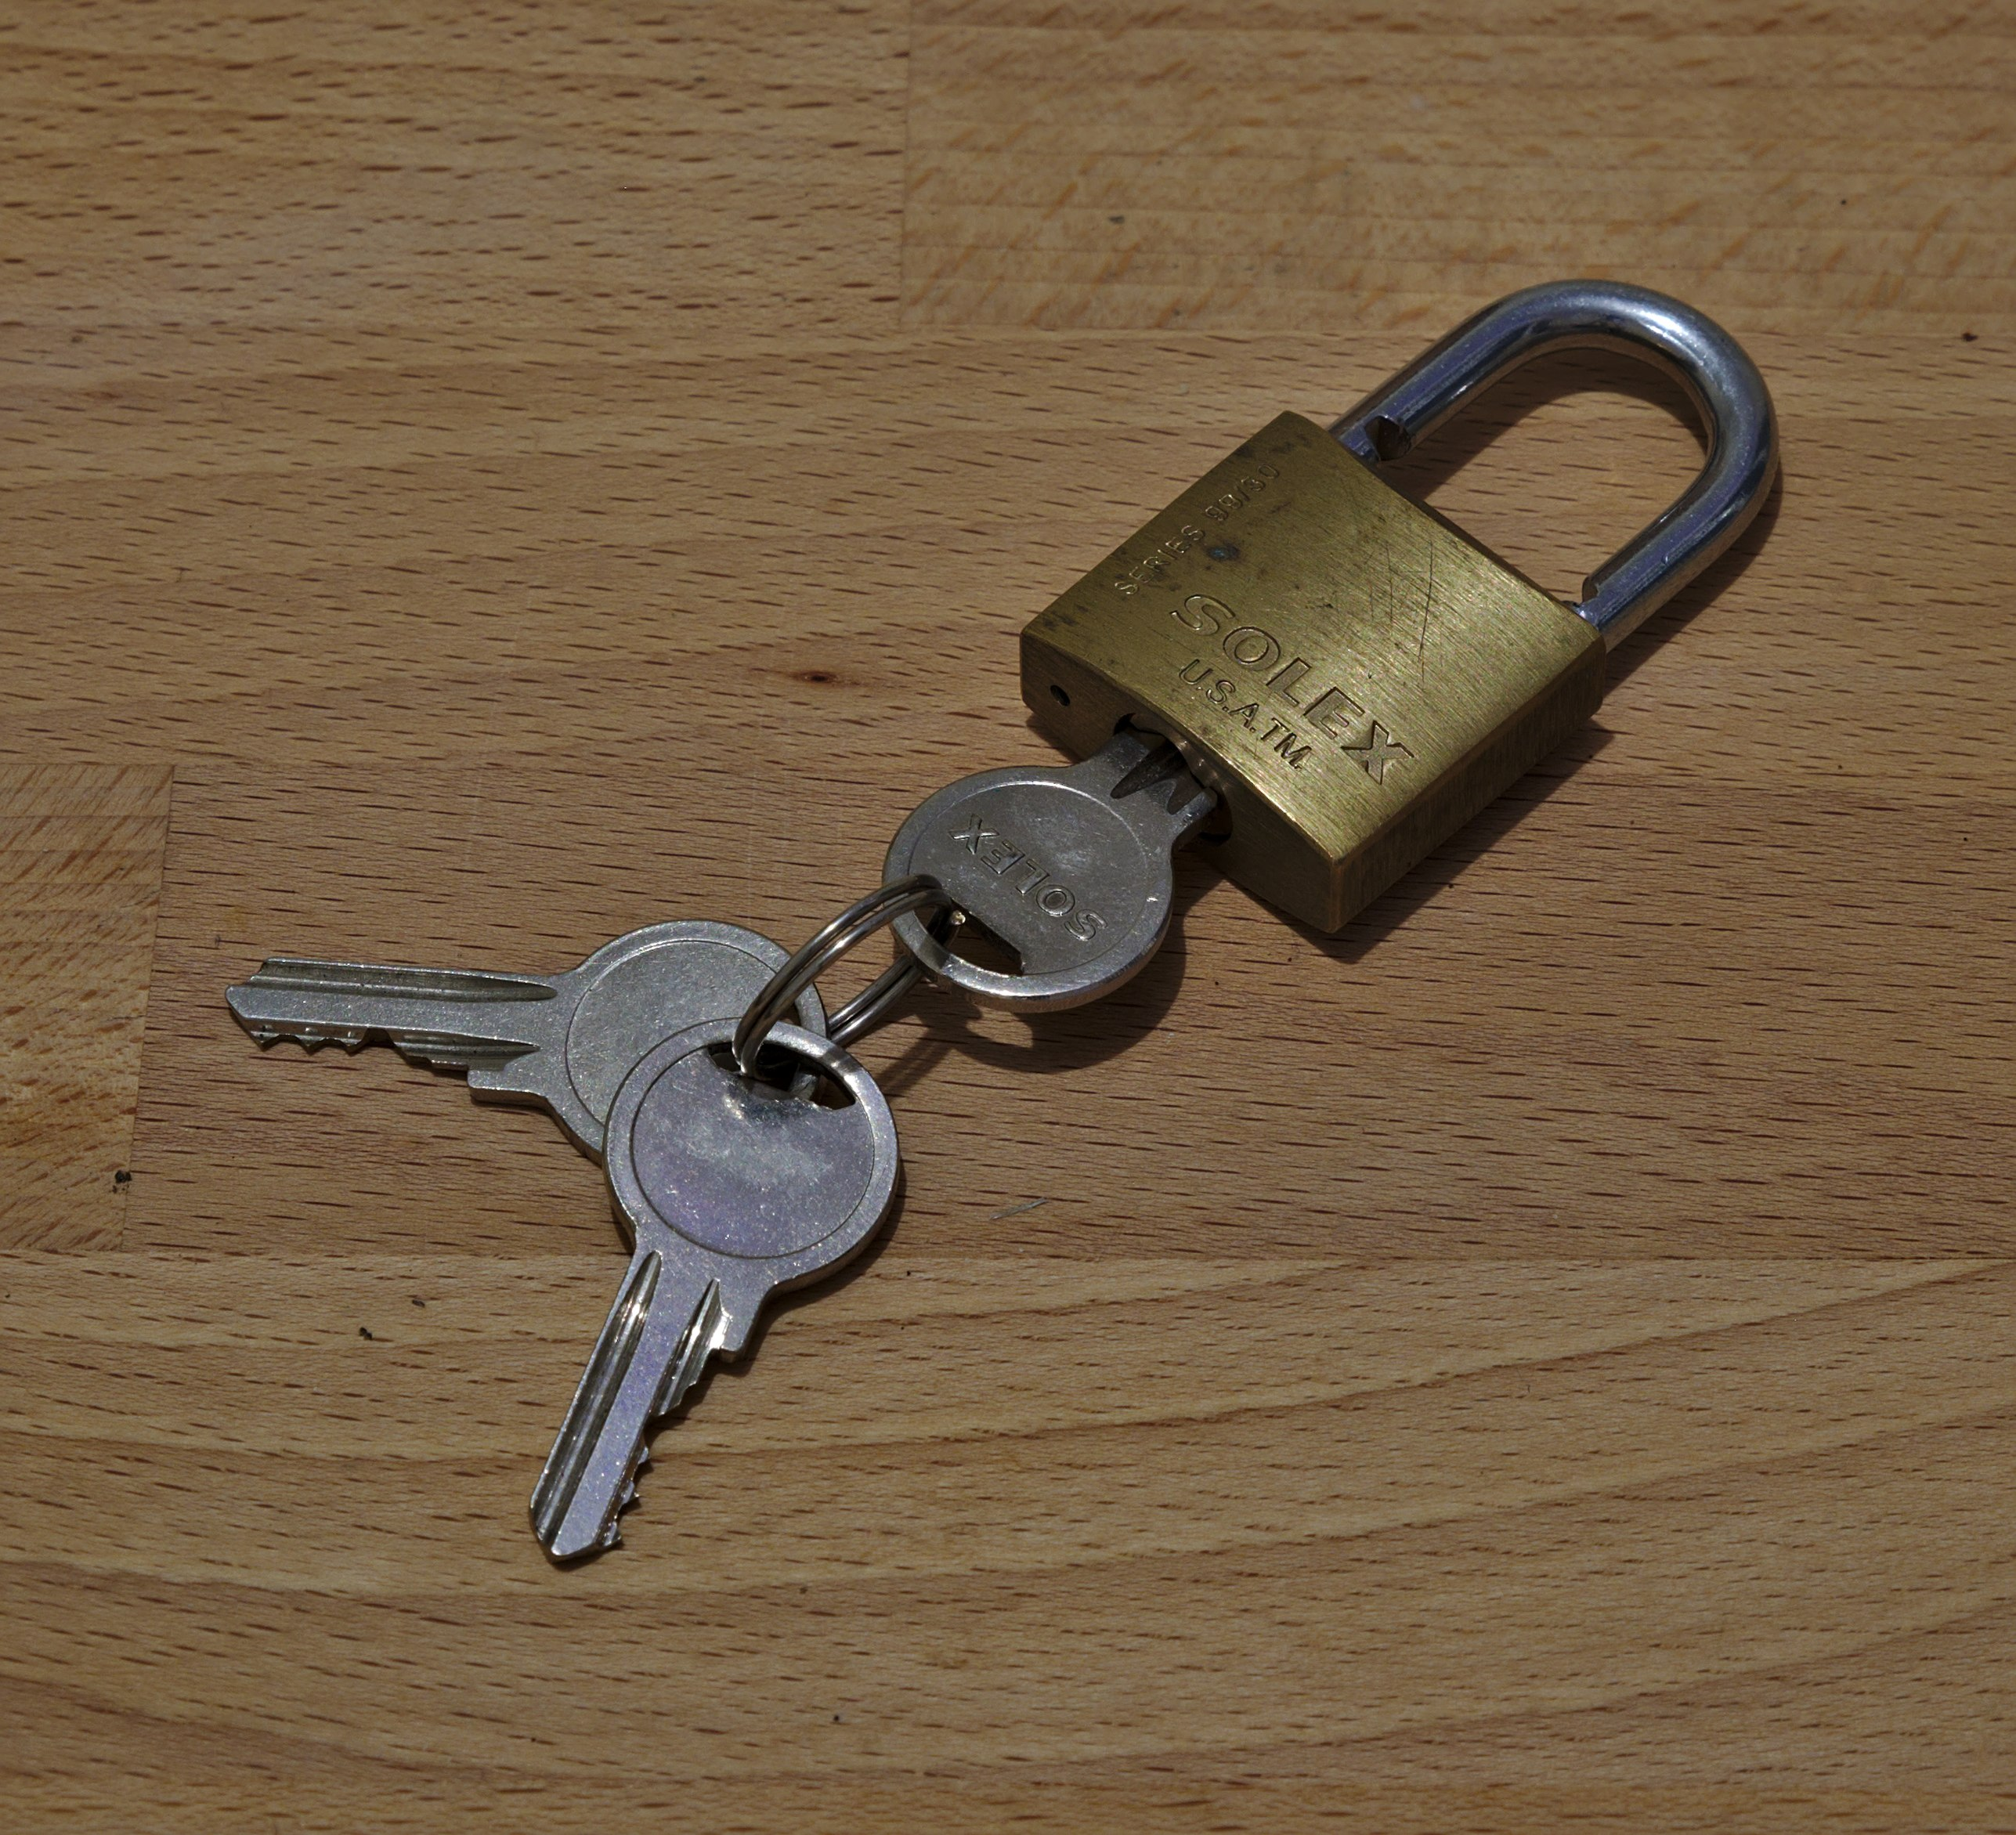 Lock and key - The complete information and online sale with